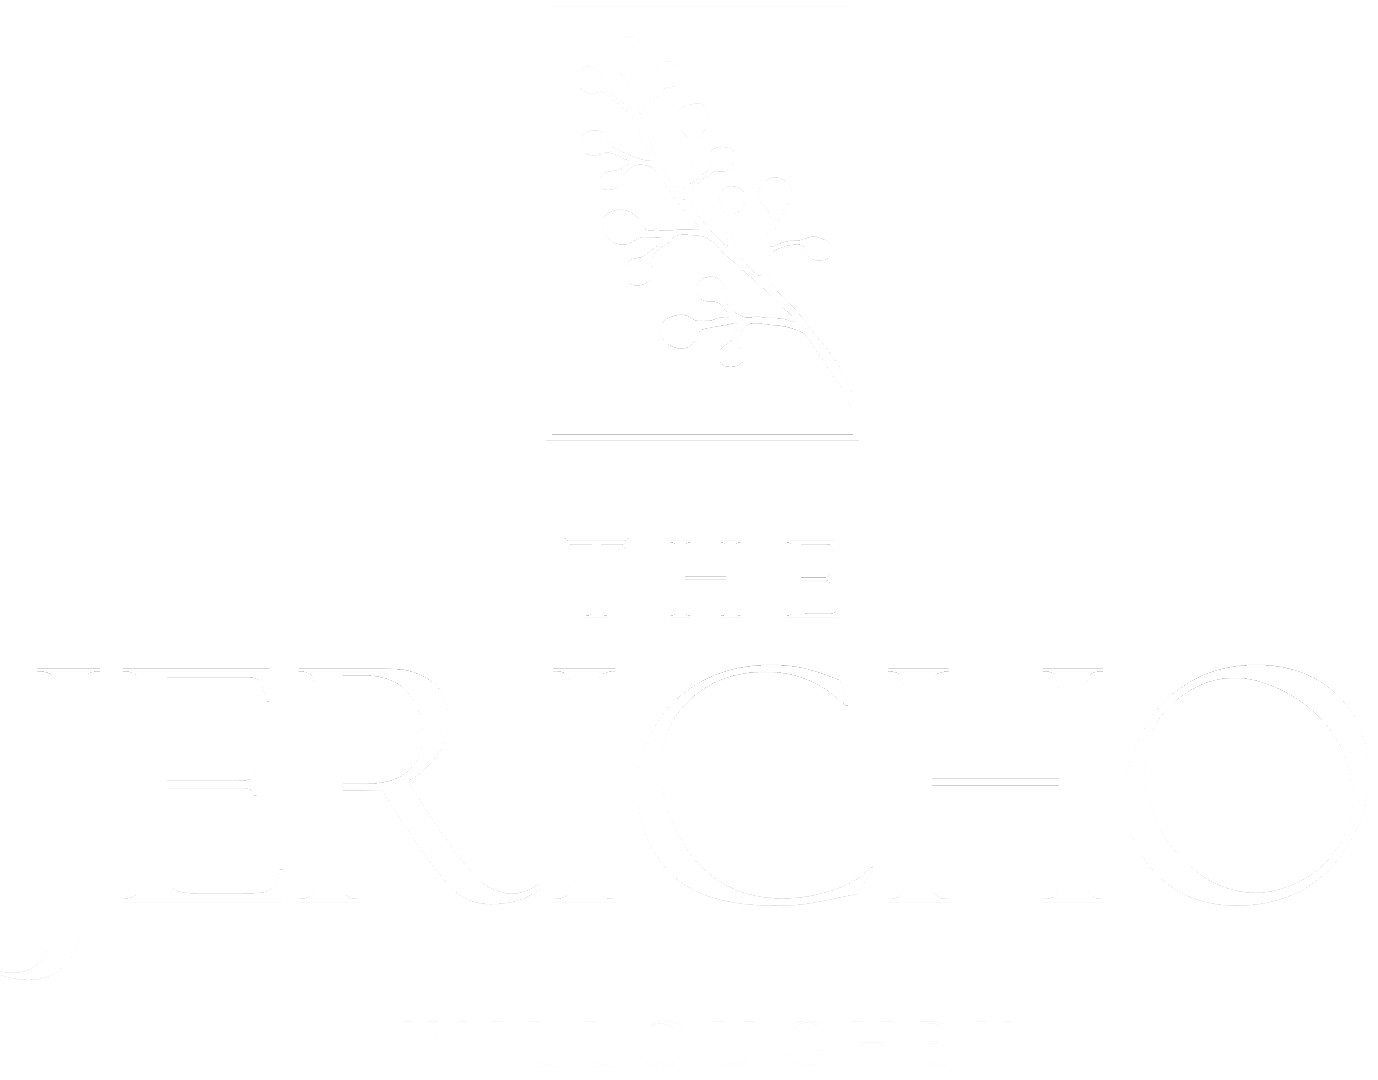 The Jericho